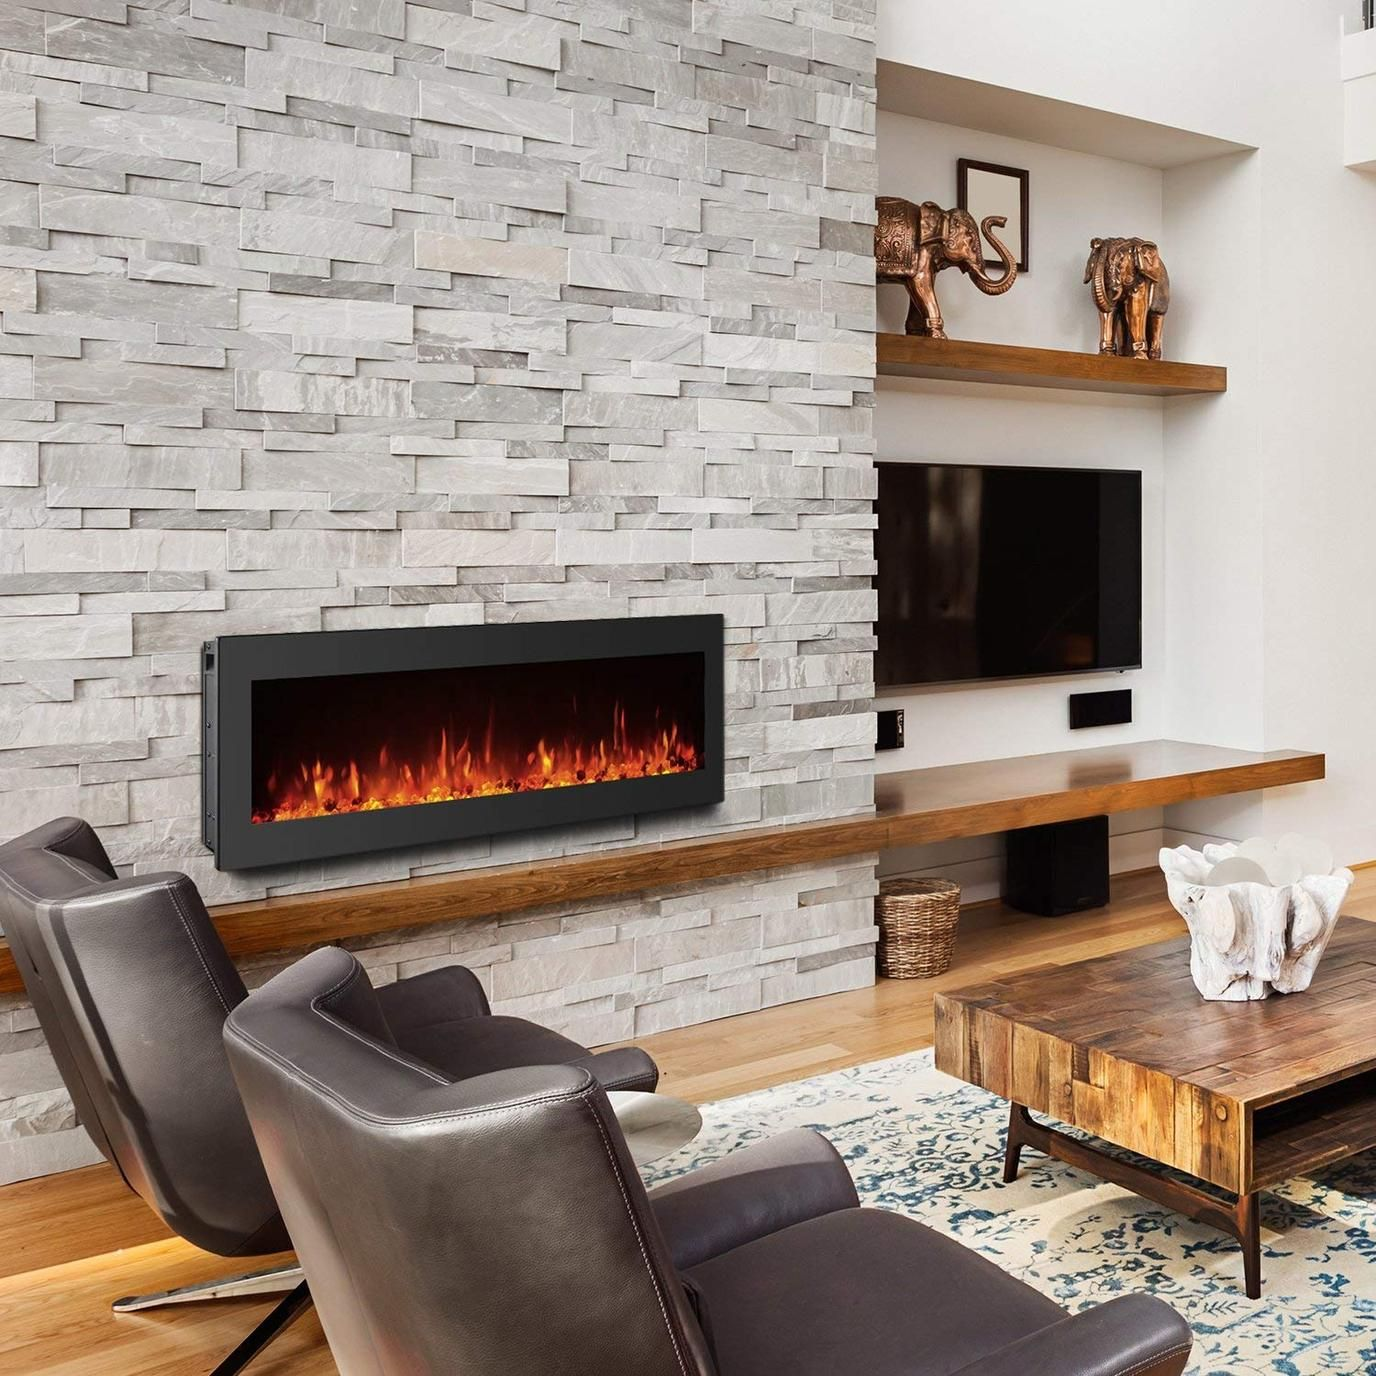 Electric Fireplace Wall Ideas Unique Gmhome Black Electric Fireplace Wall Mounted Heater